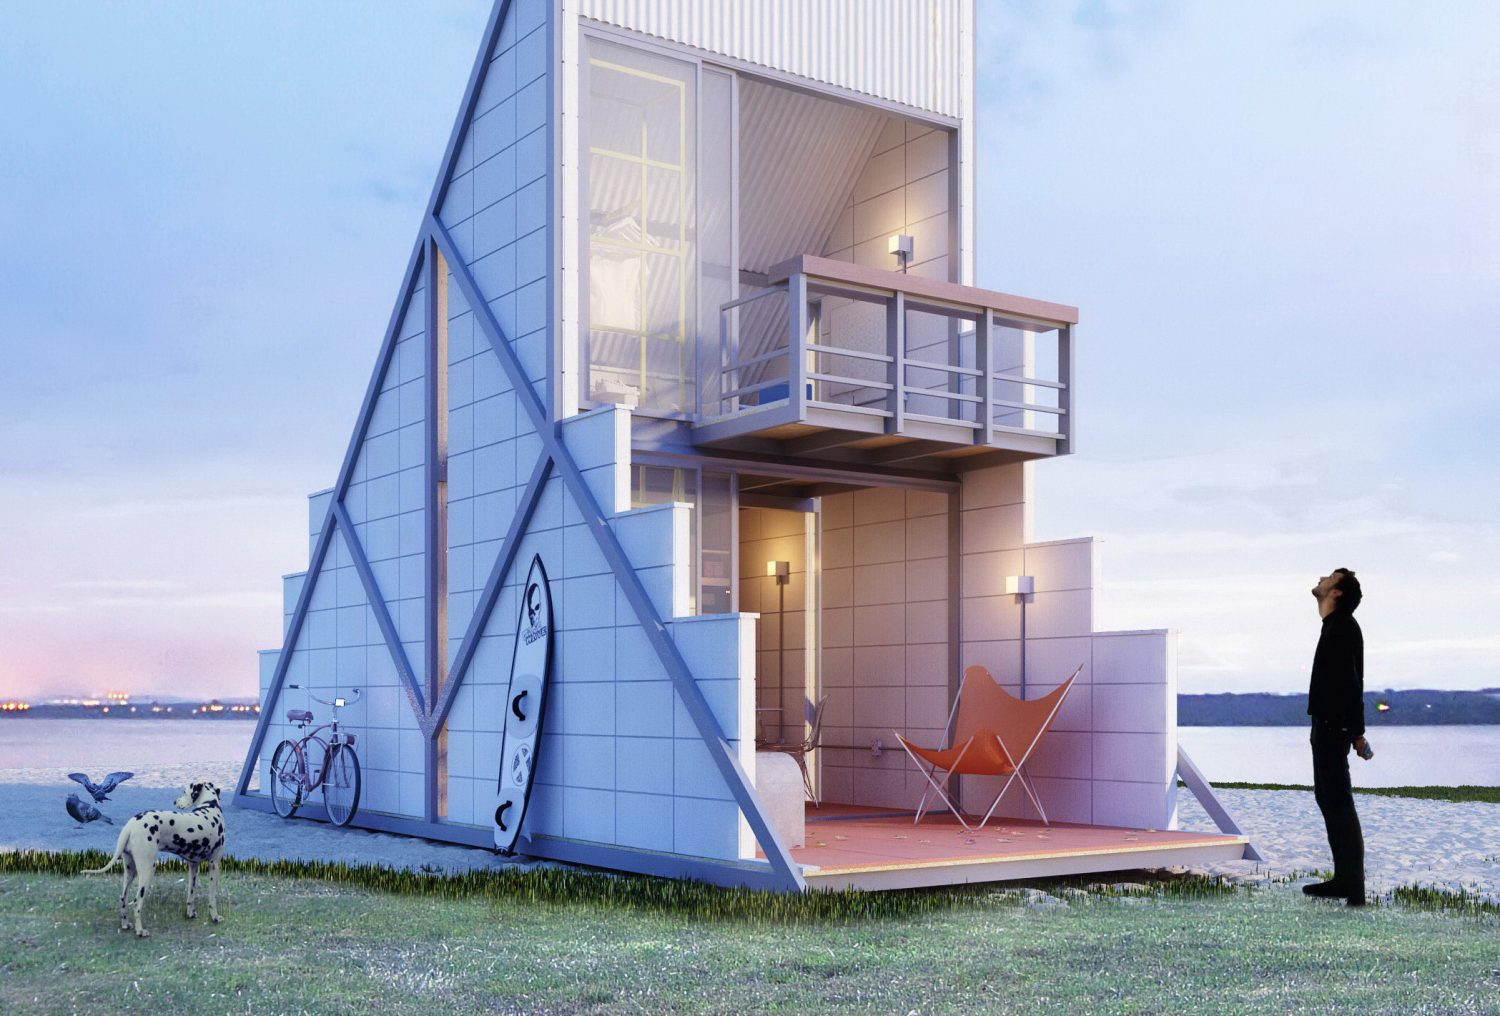 Triangular Micro House by Felipe Campolina